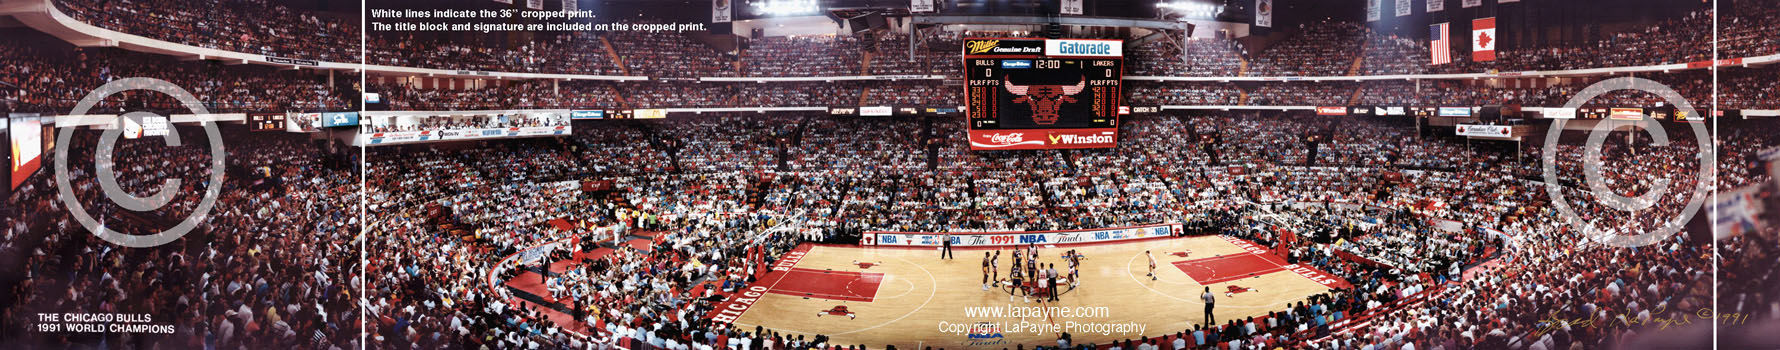 Chicago Stadium Panorama, 1991 NBA Finals